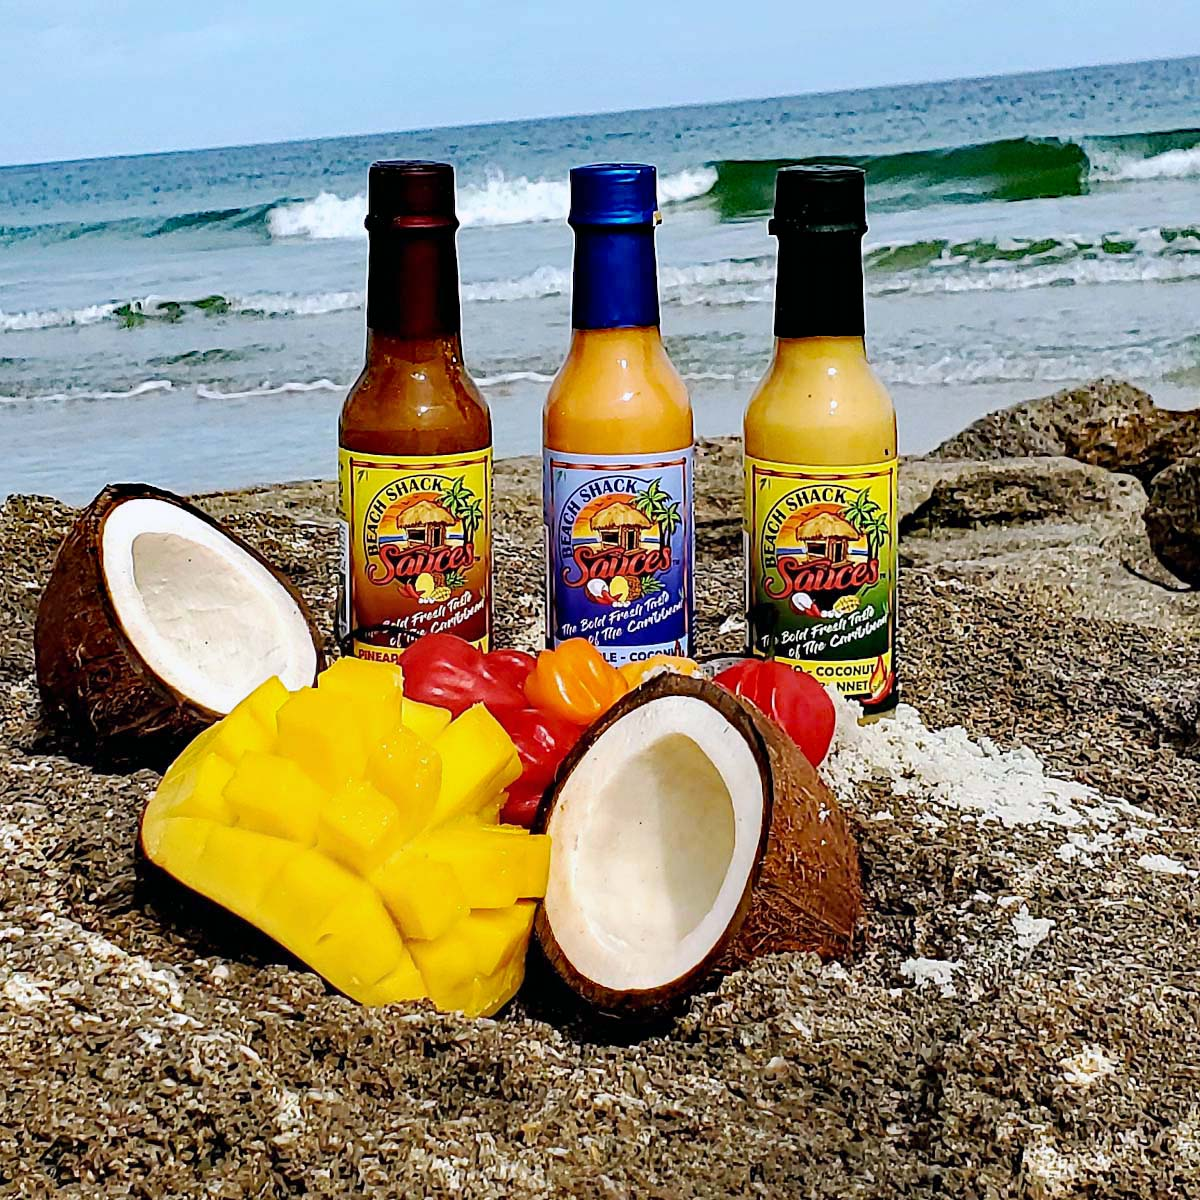 Amazing Caribbean Hot Sauce, Pineapple Coconut Habanero, Mango coconut scotch bonnet, Pineapple Mango Habanero